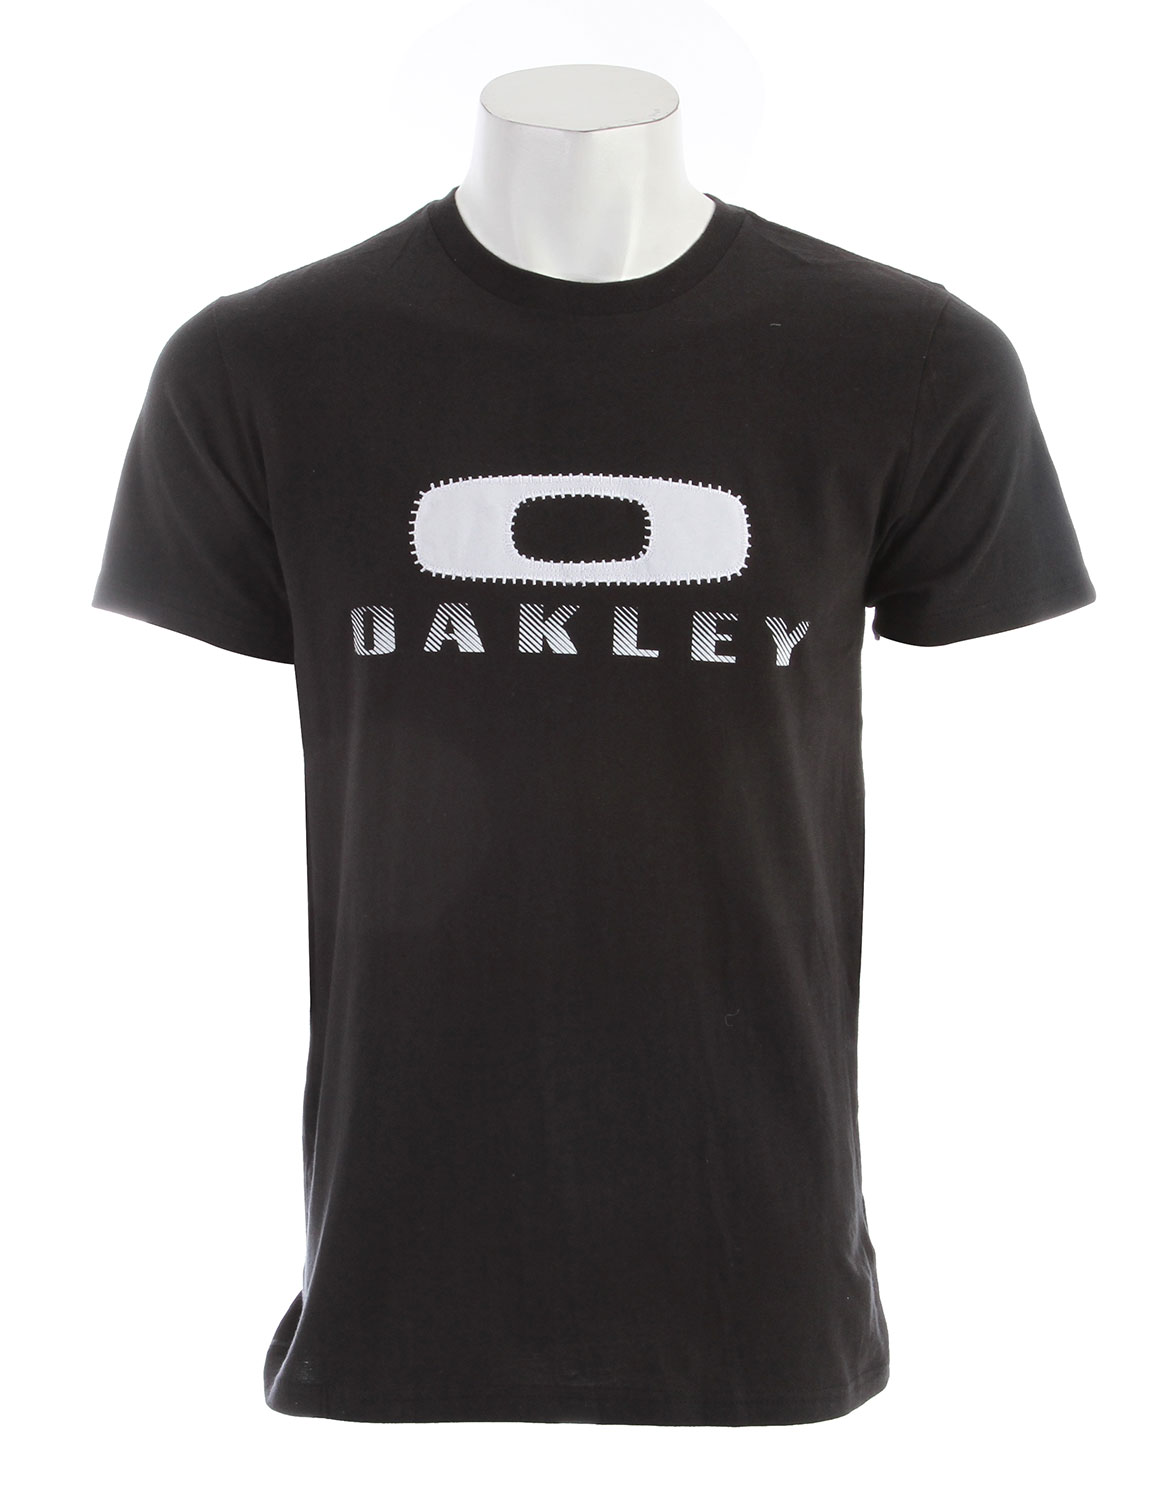 Tee with front screen printKey Features of the Oakley Griffin's Nest T-Shirt: Regular 100% cotton - $20.00